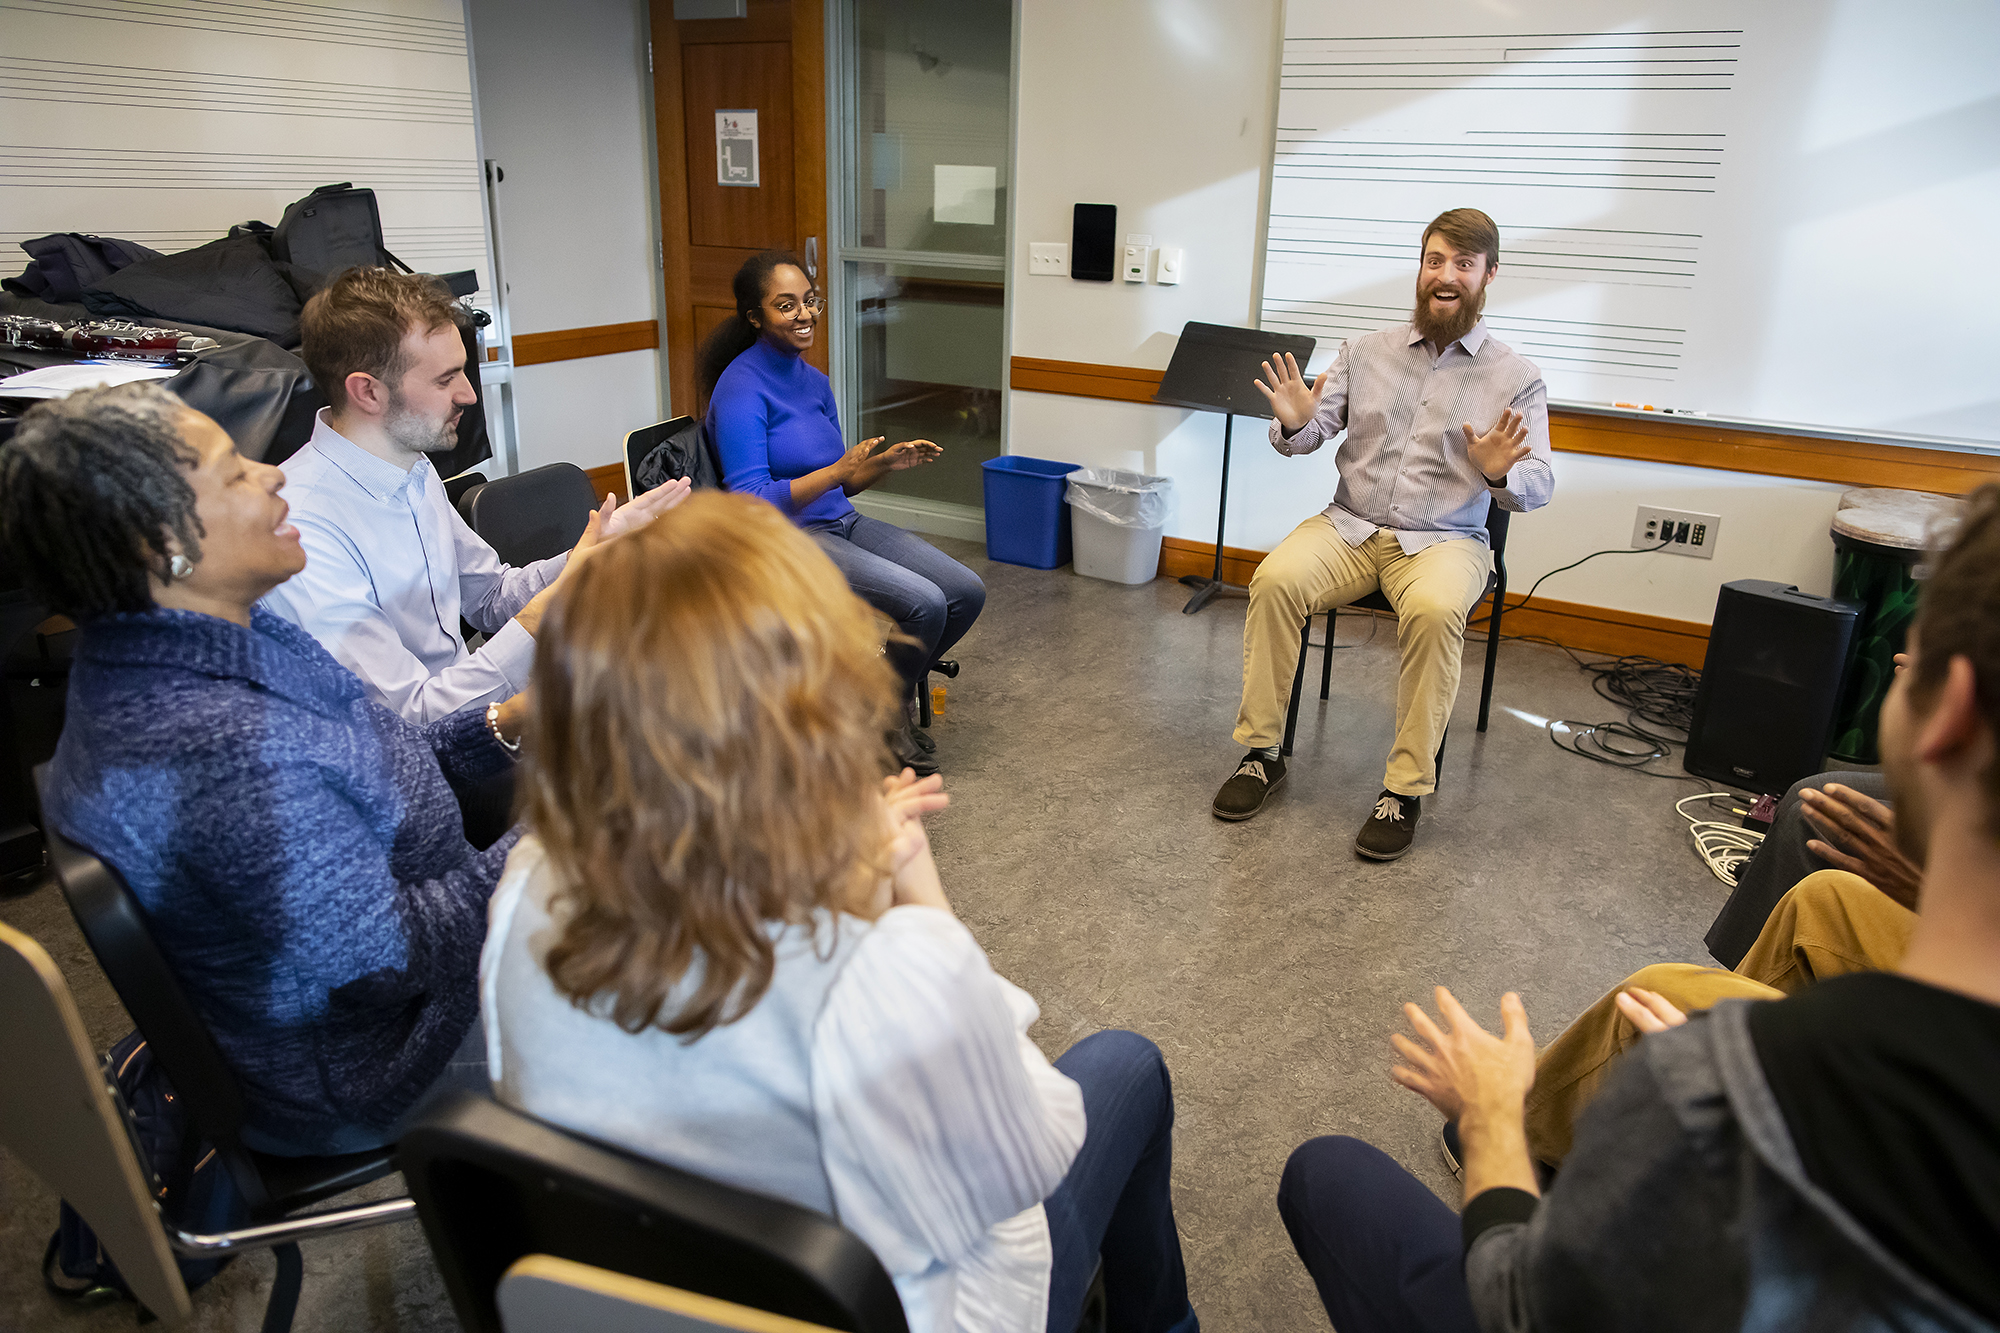 Nick leads a body percussion exercise during a Creative Expression Through Music session. Photo by Eric Sucar/Penn University Communications.